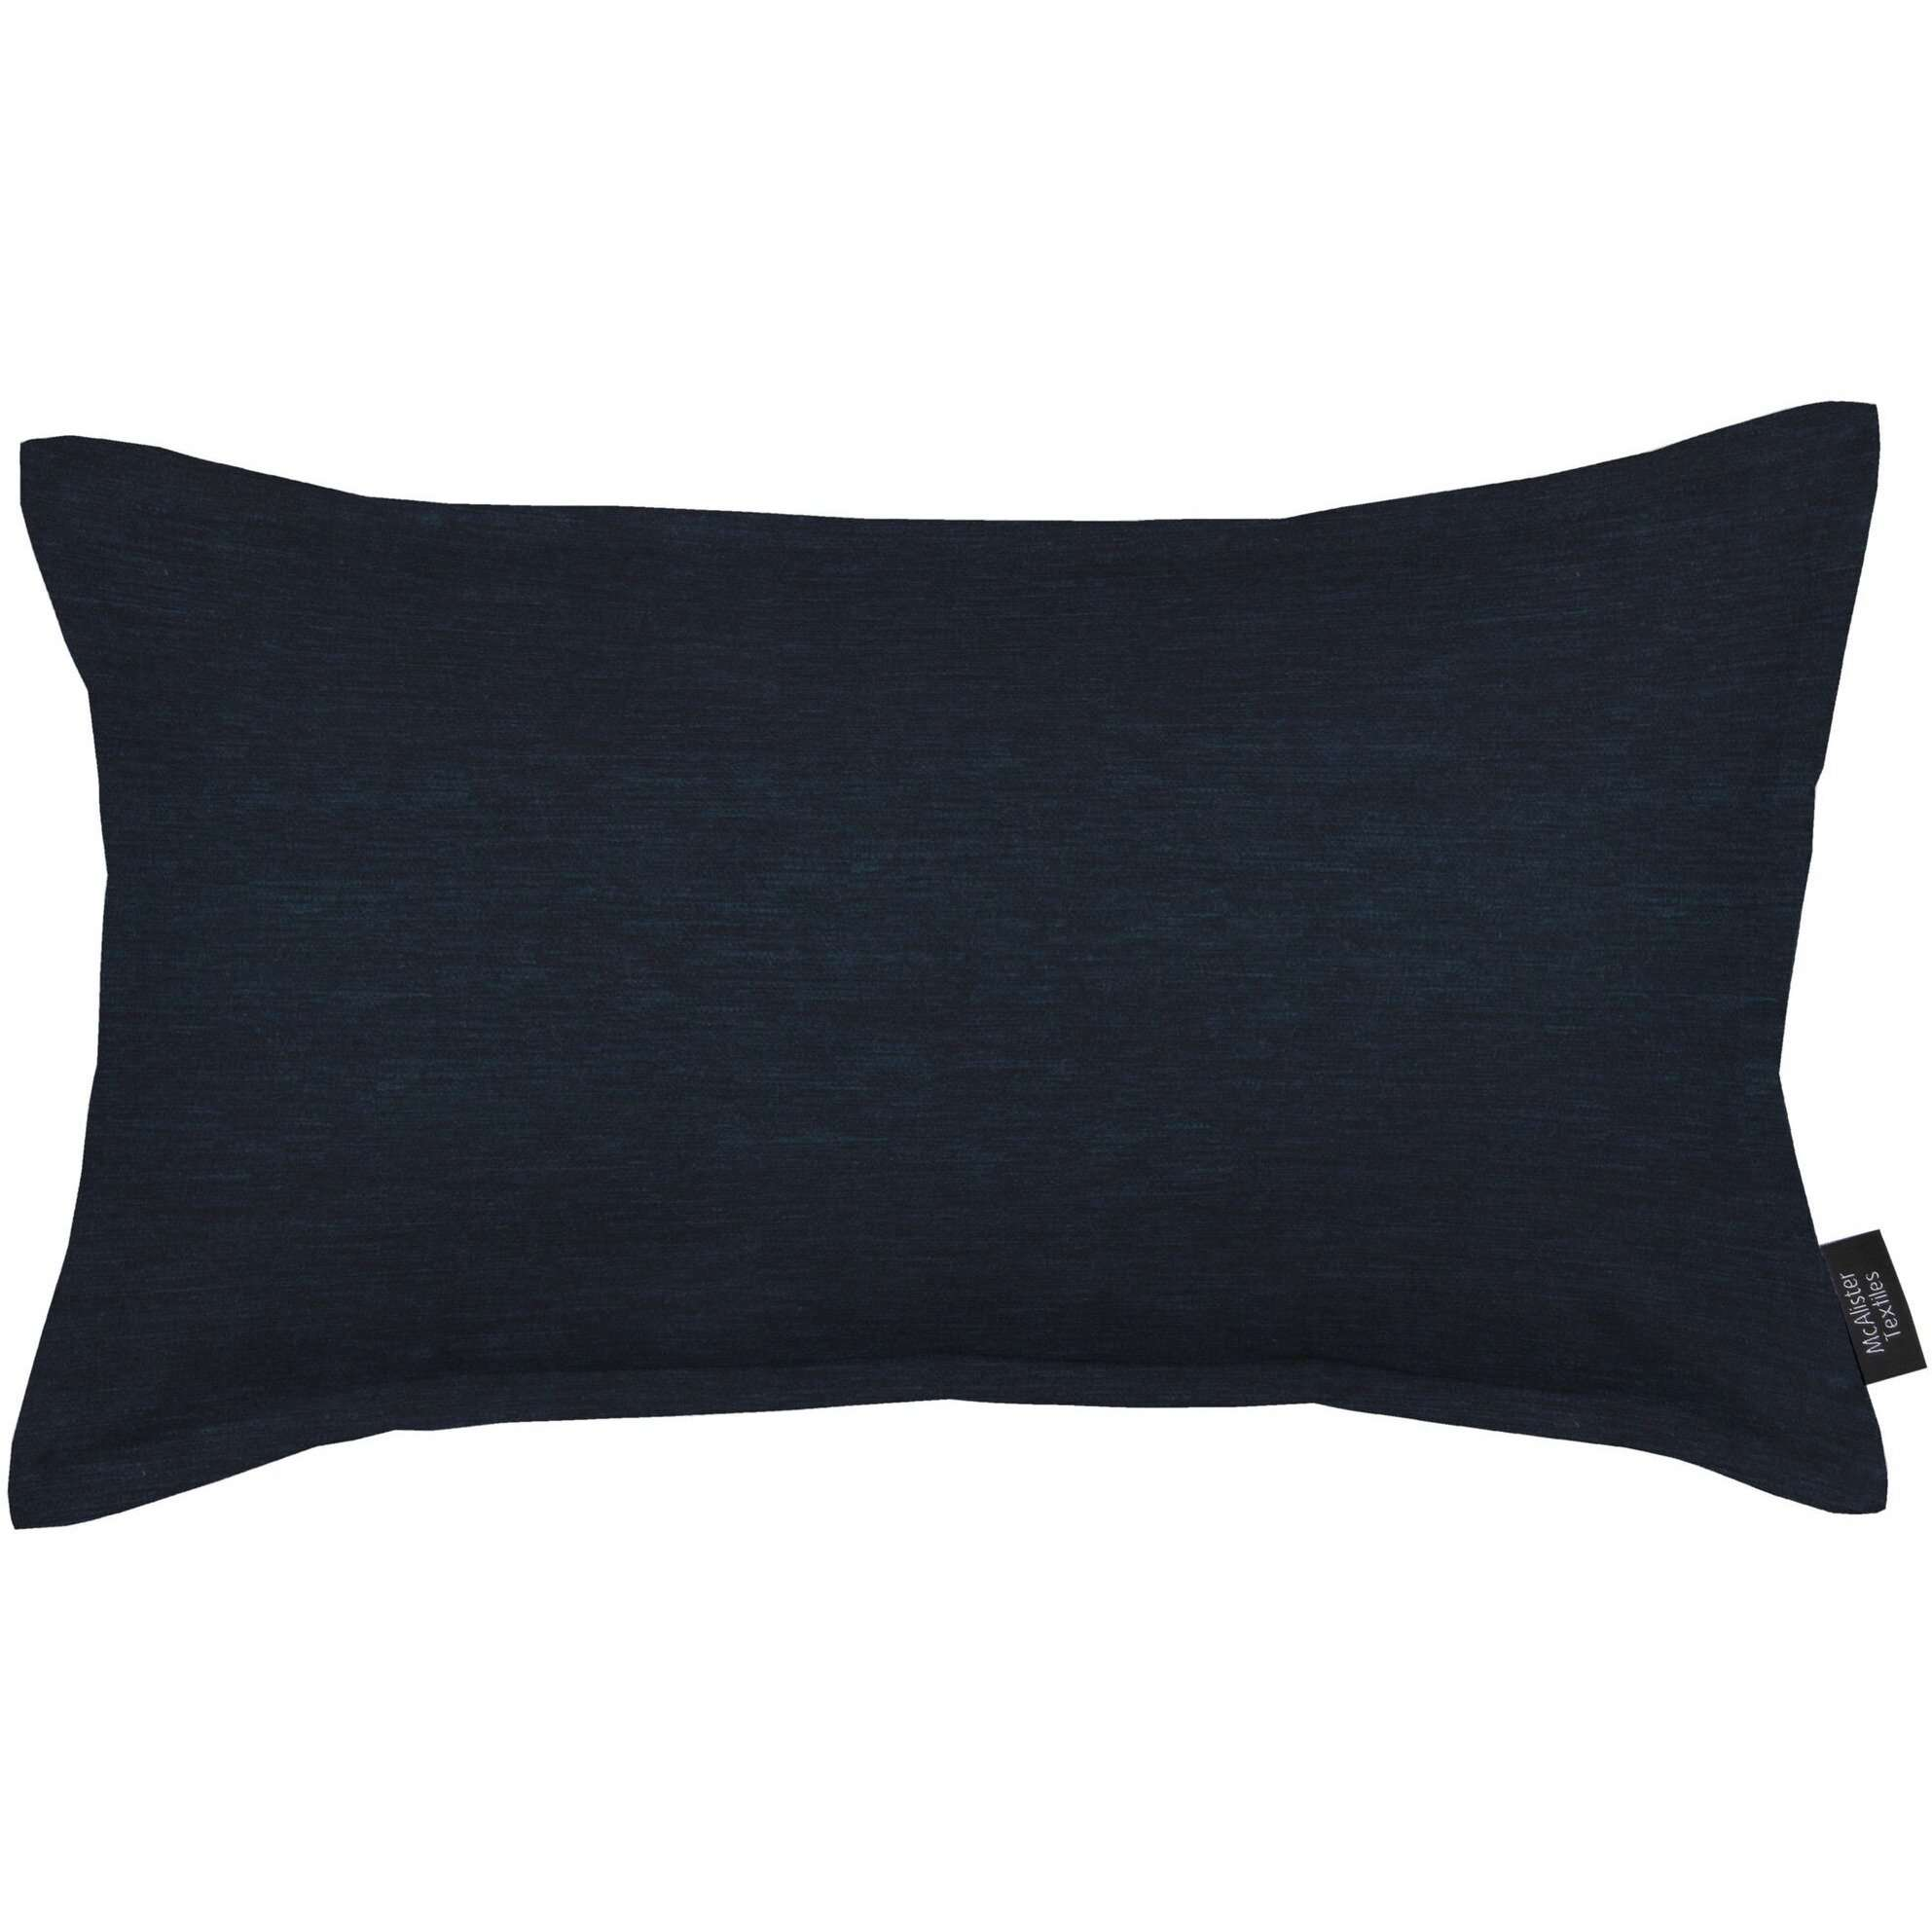 McAlister Textiles Plain Chenille Navy Blue Cushion Cushions and Covers Polyester Filler 60cm x 40cm